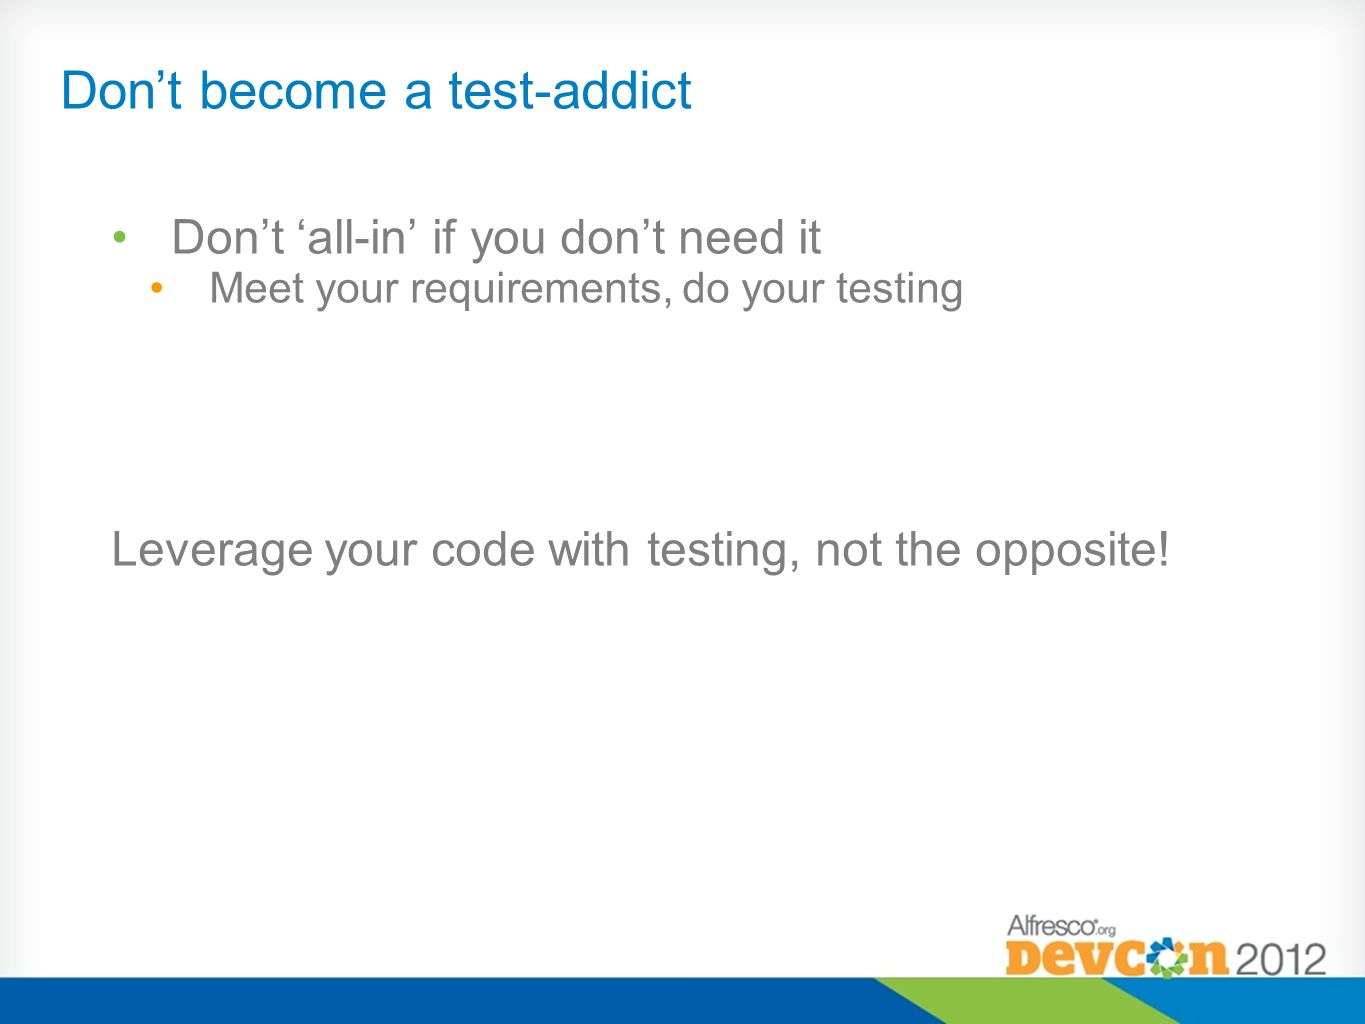 Don't become a test-addict